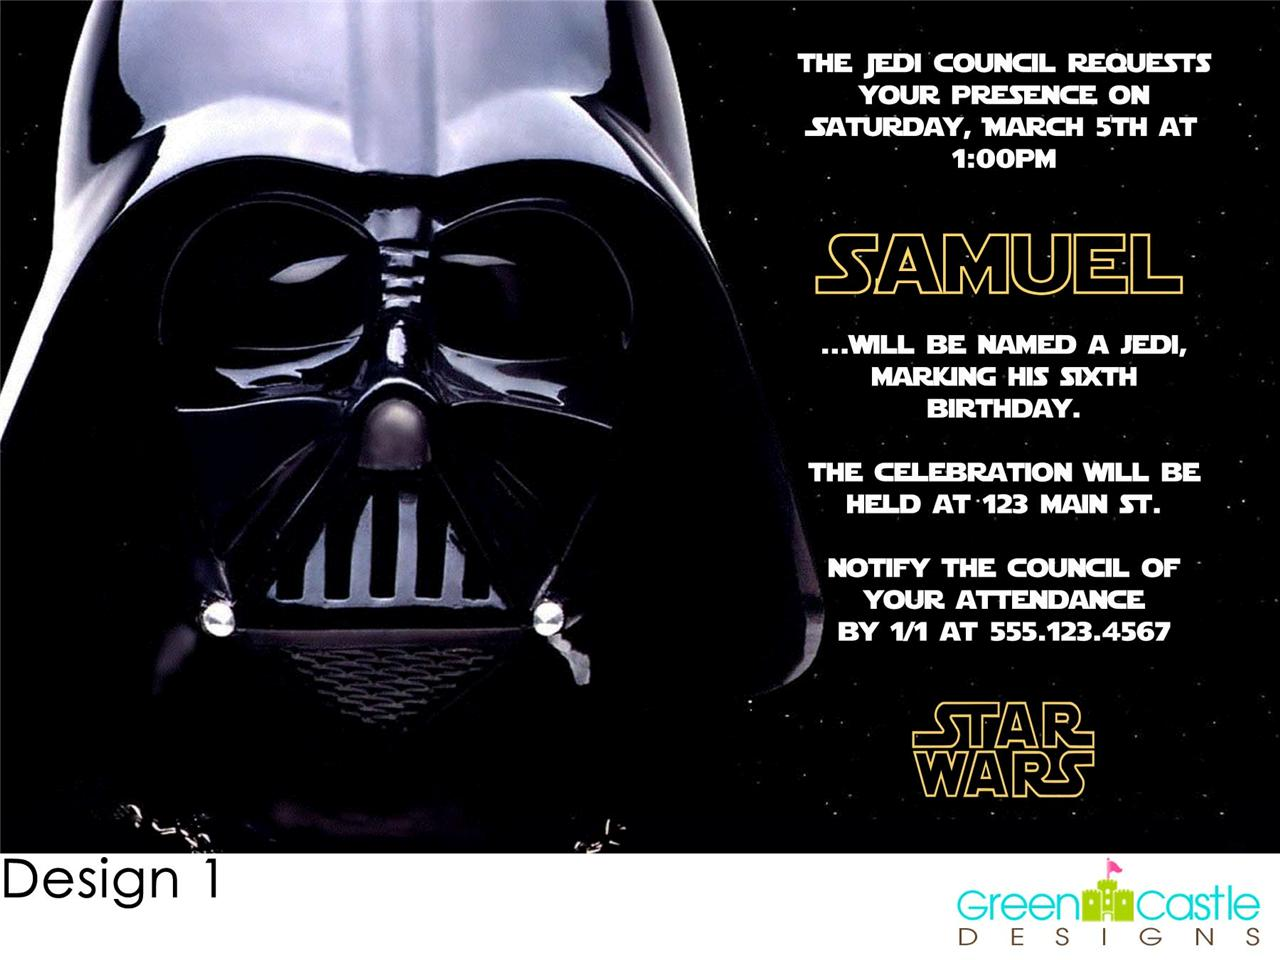 Star Wars Personalized Birthday Invitations and get inspiration to create nice invitation ideas